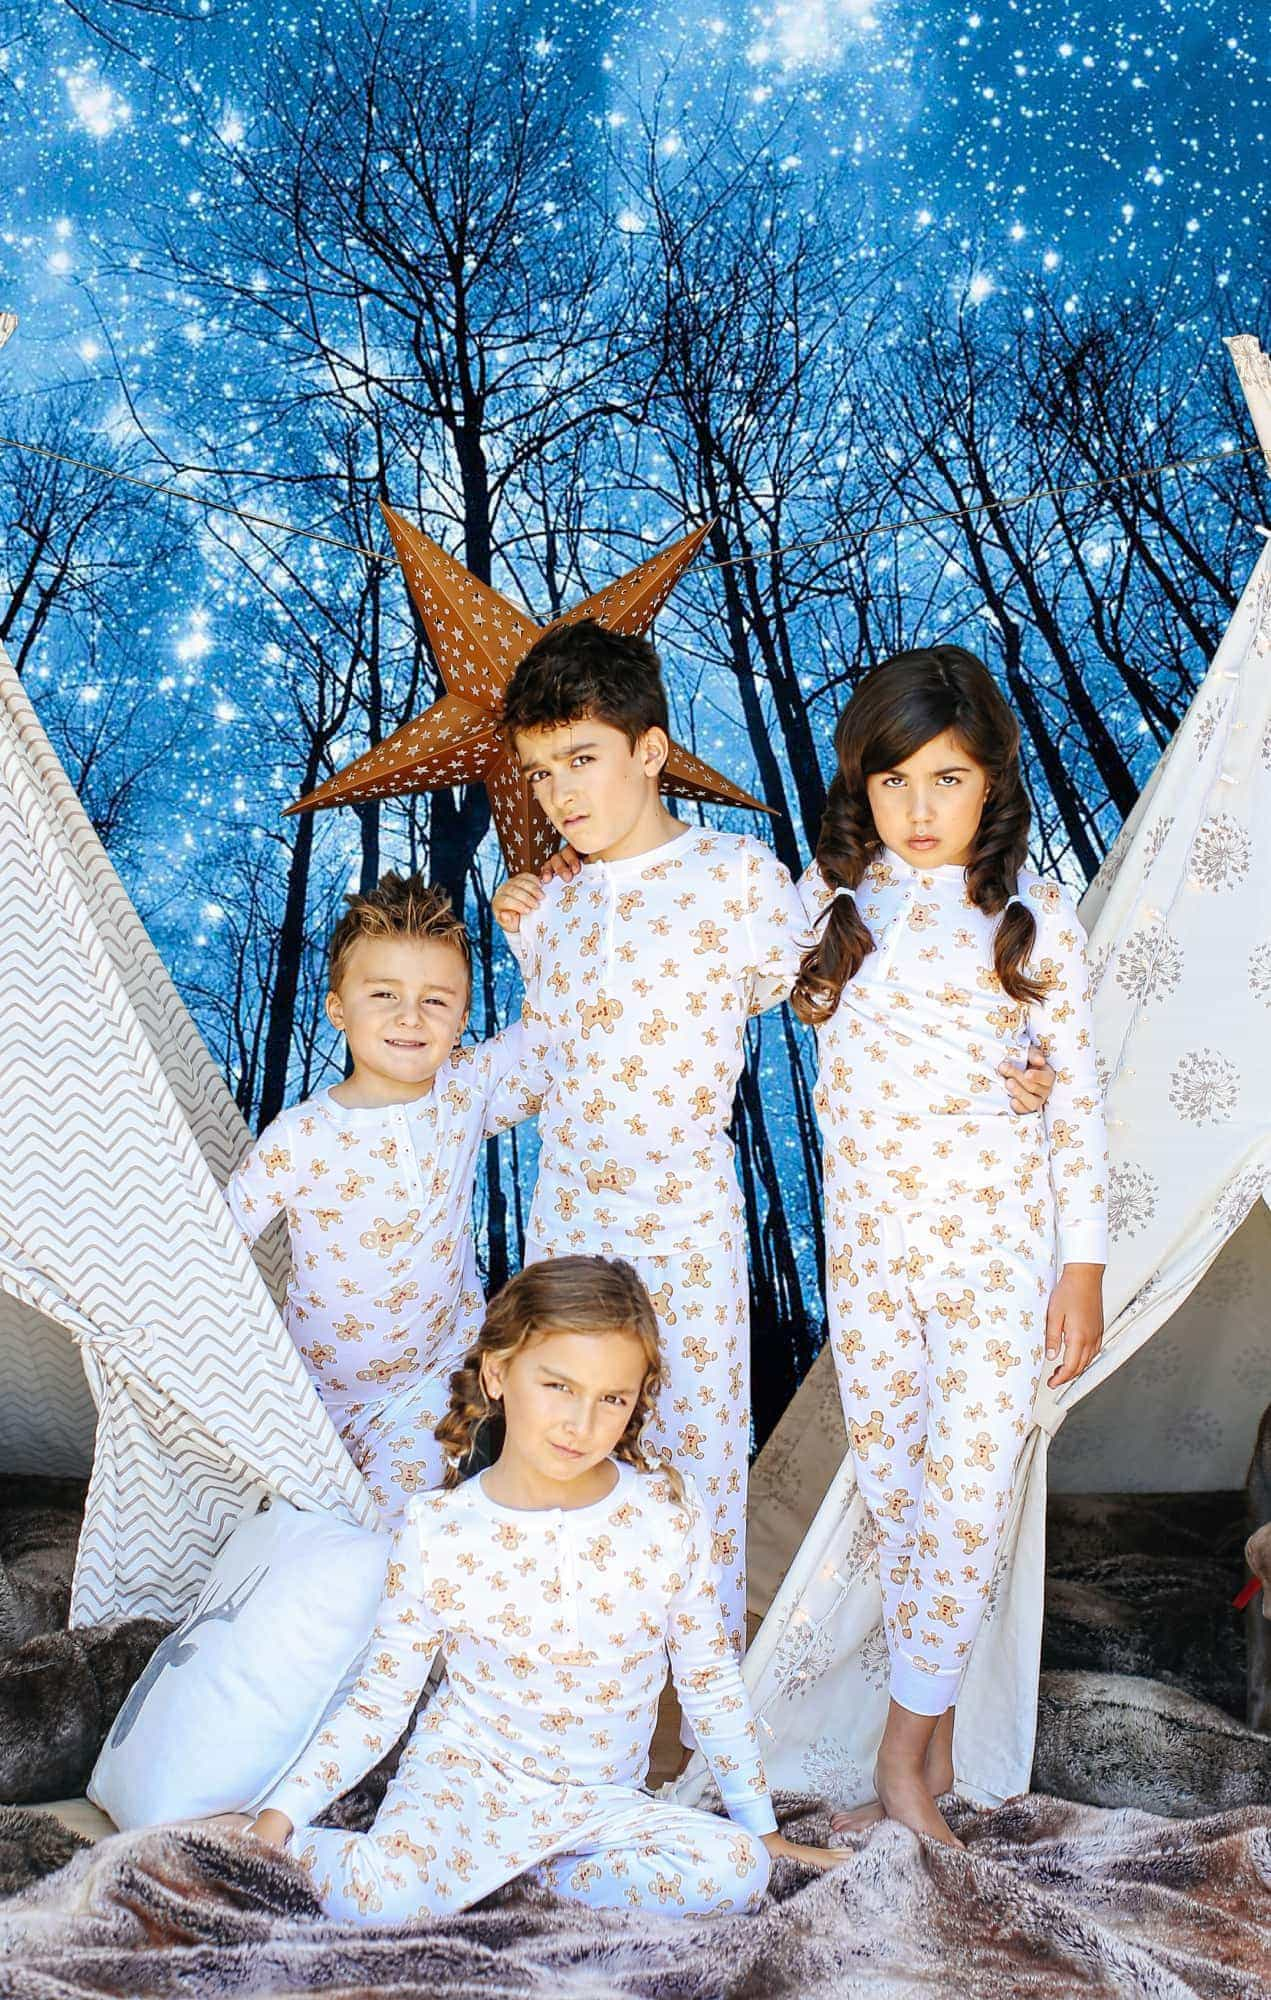 kids in pajamas with night sky